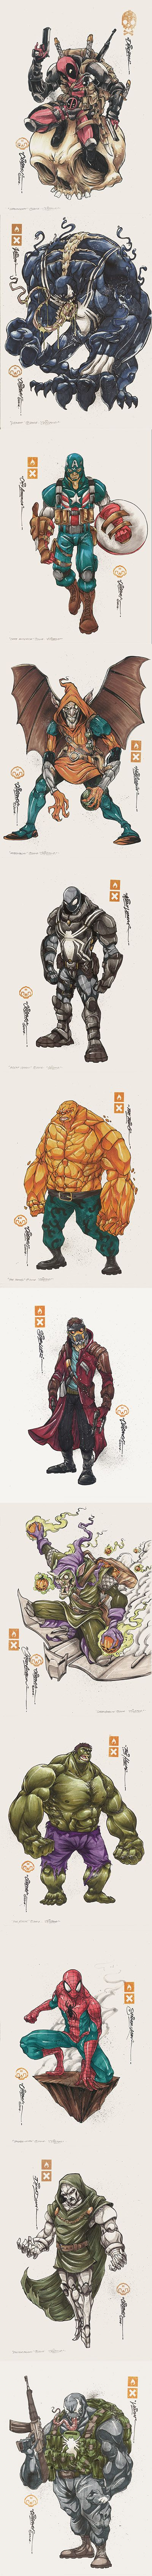 Groovy Marvel character art series by Clog-Two